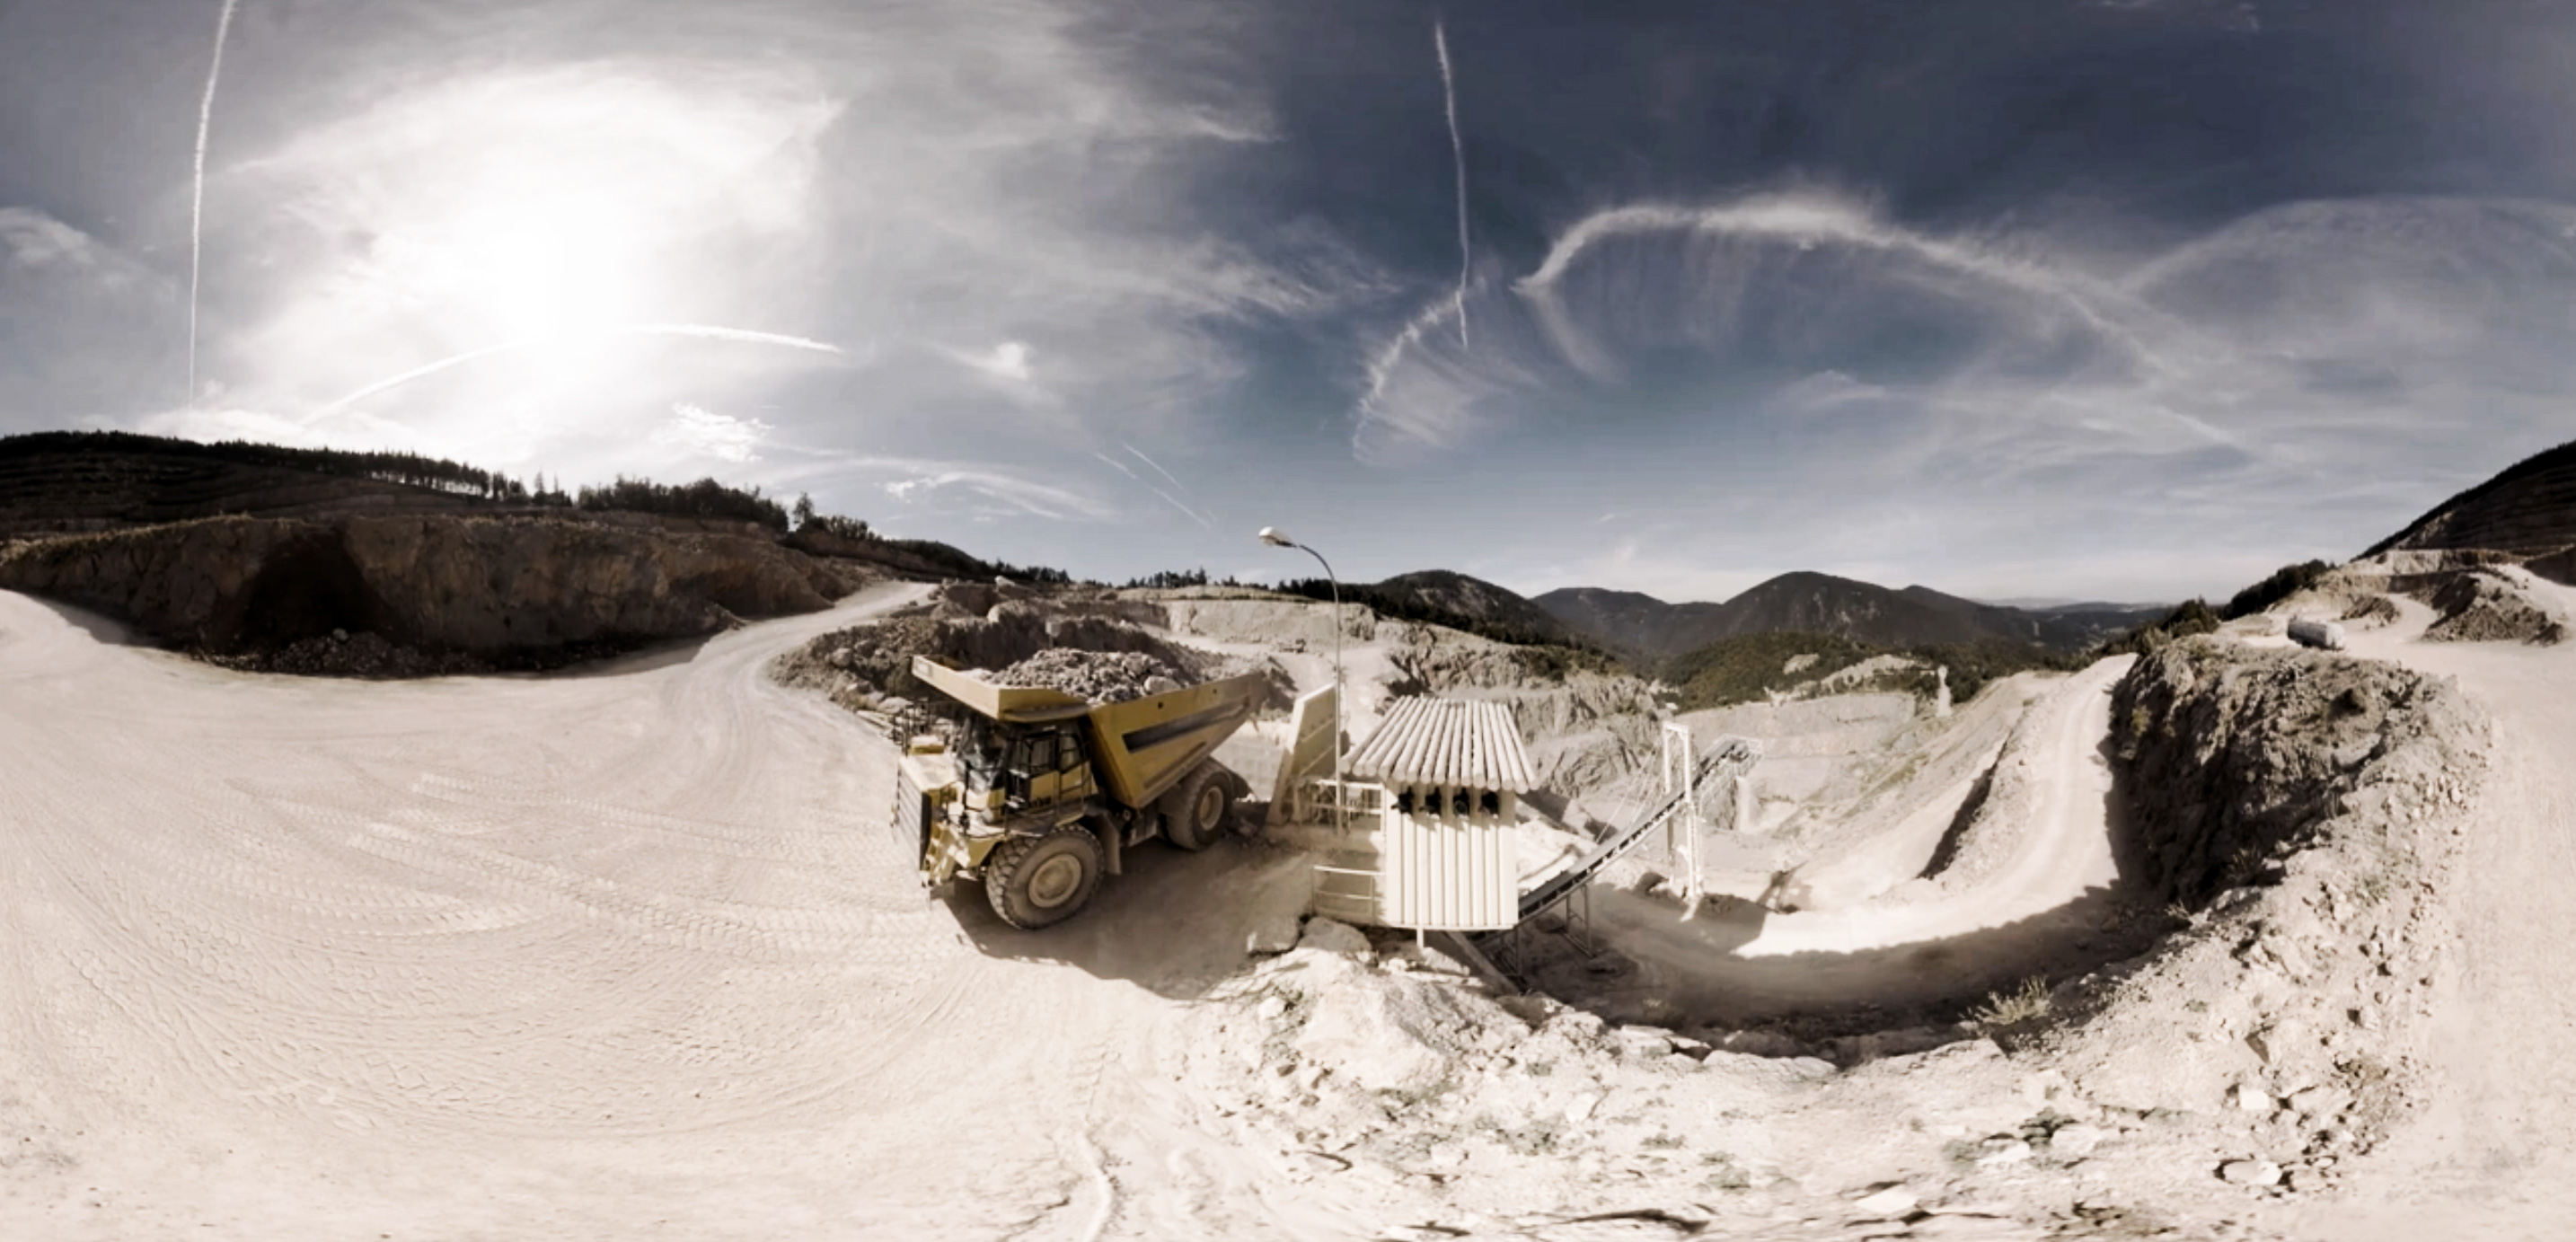 still frame from limestone quarry taken from Baumit 360 video virtual tour